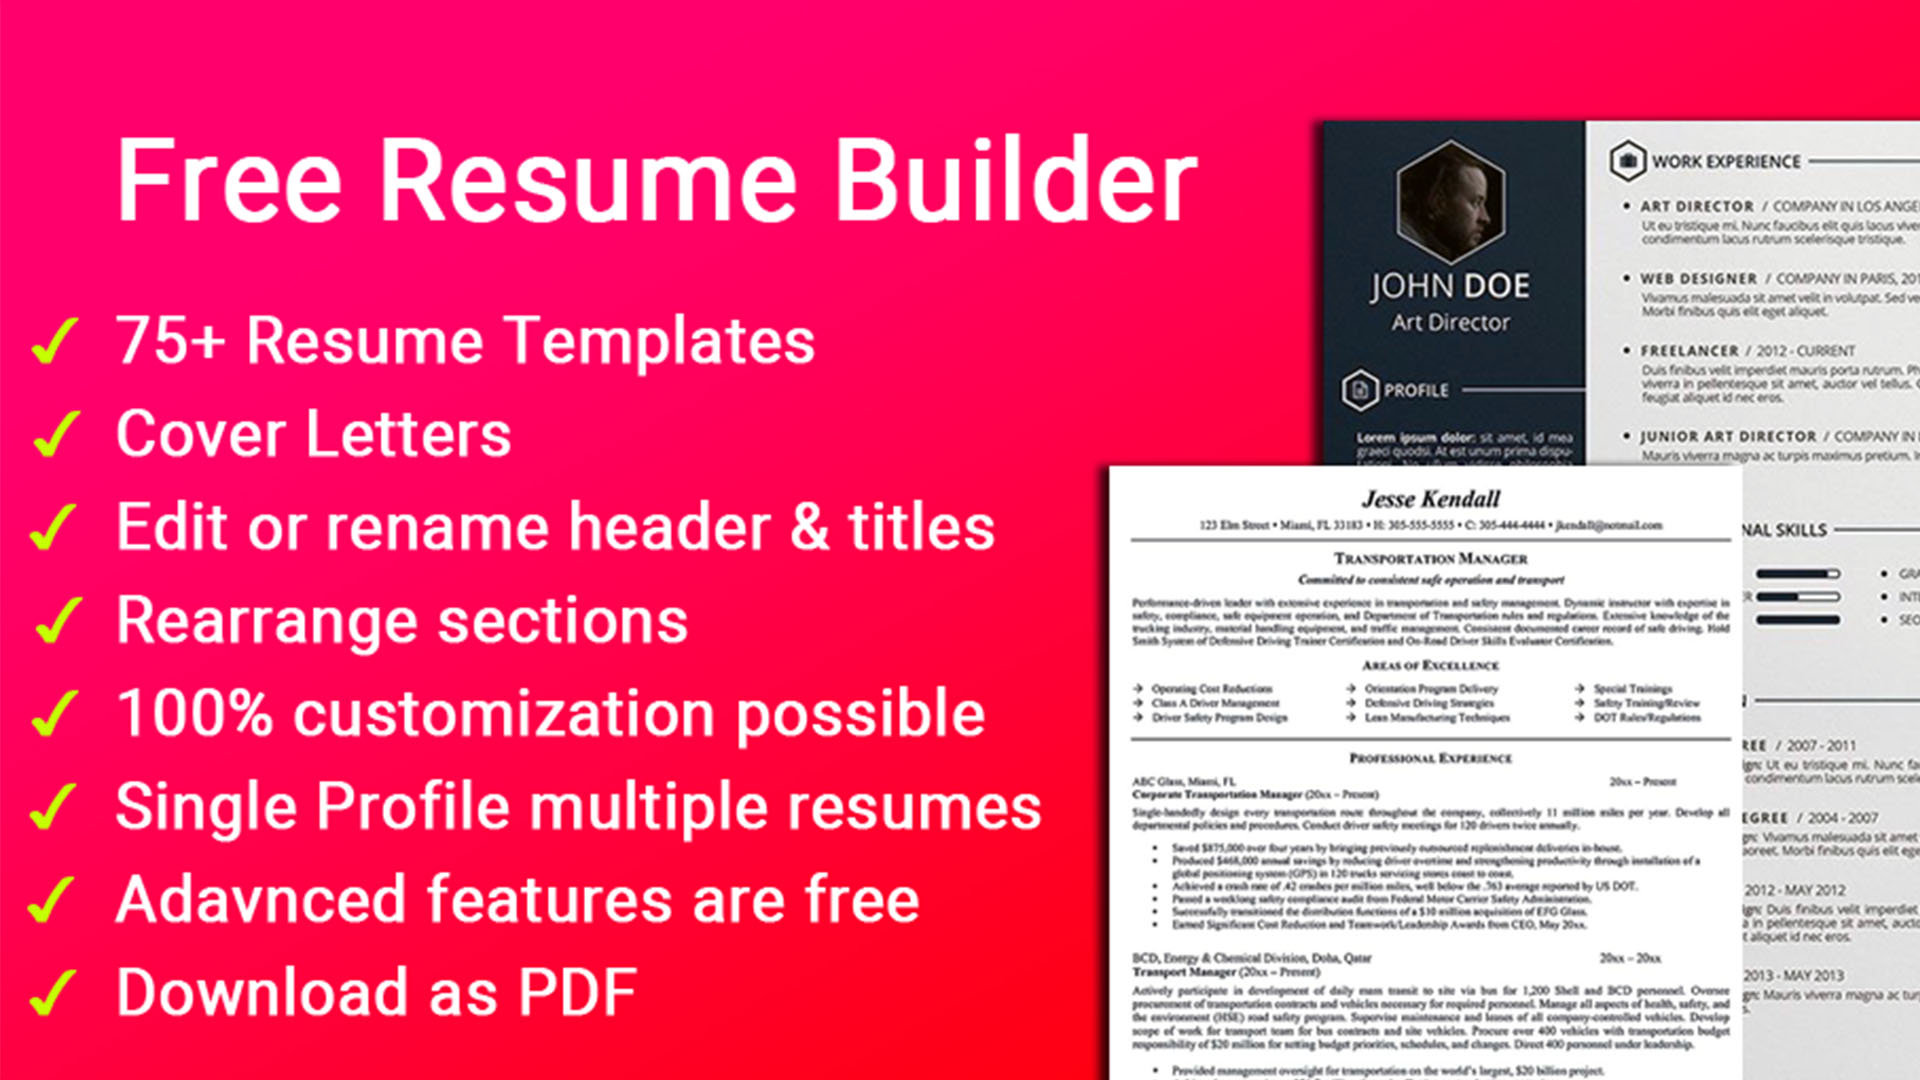 Create the perfect job application with our resume cover letter templates. 10 Best Resume Builder Apps For Android Android Authority